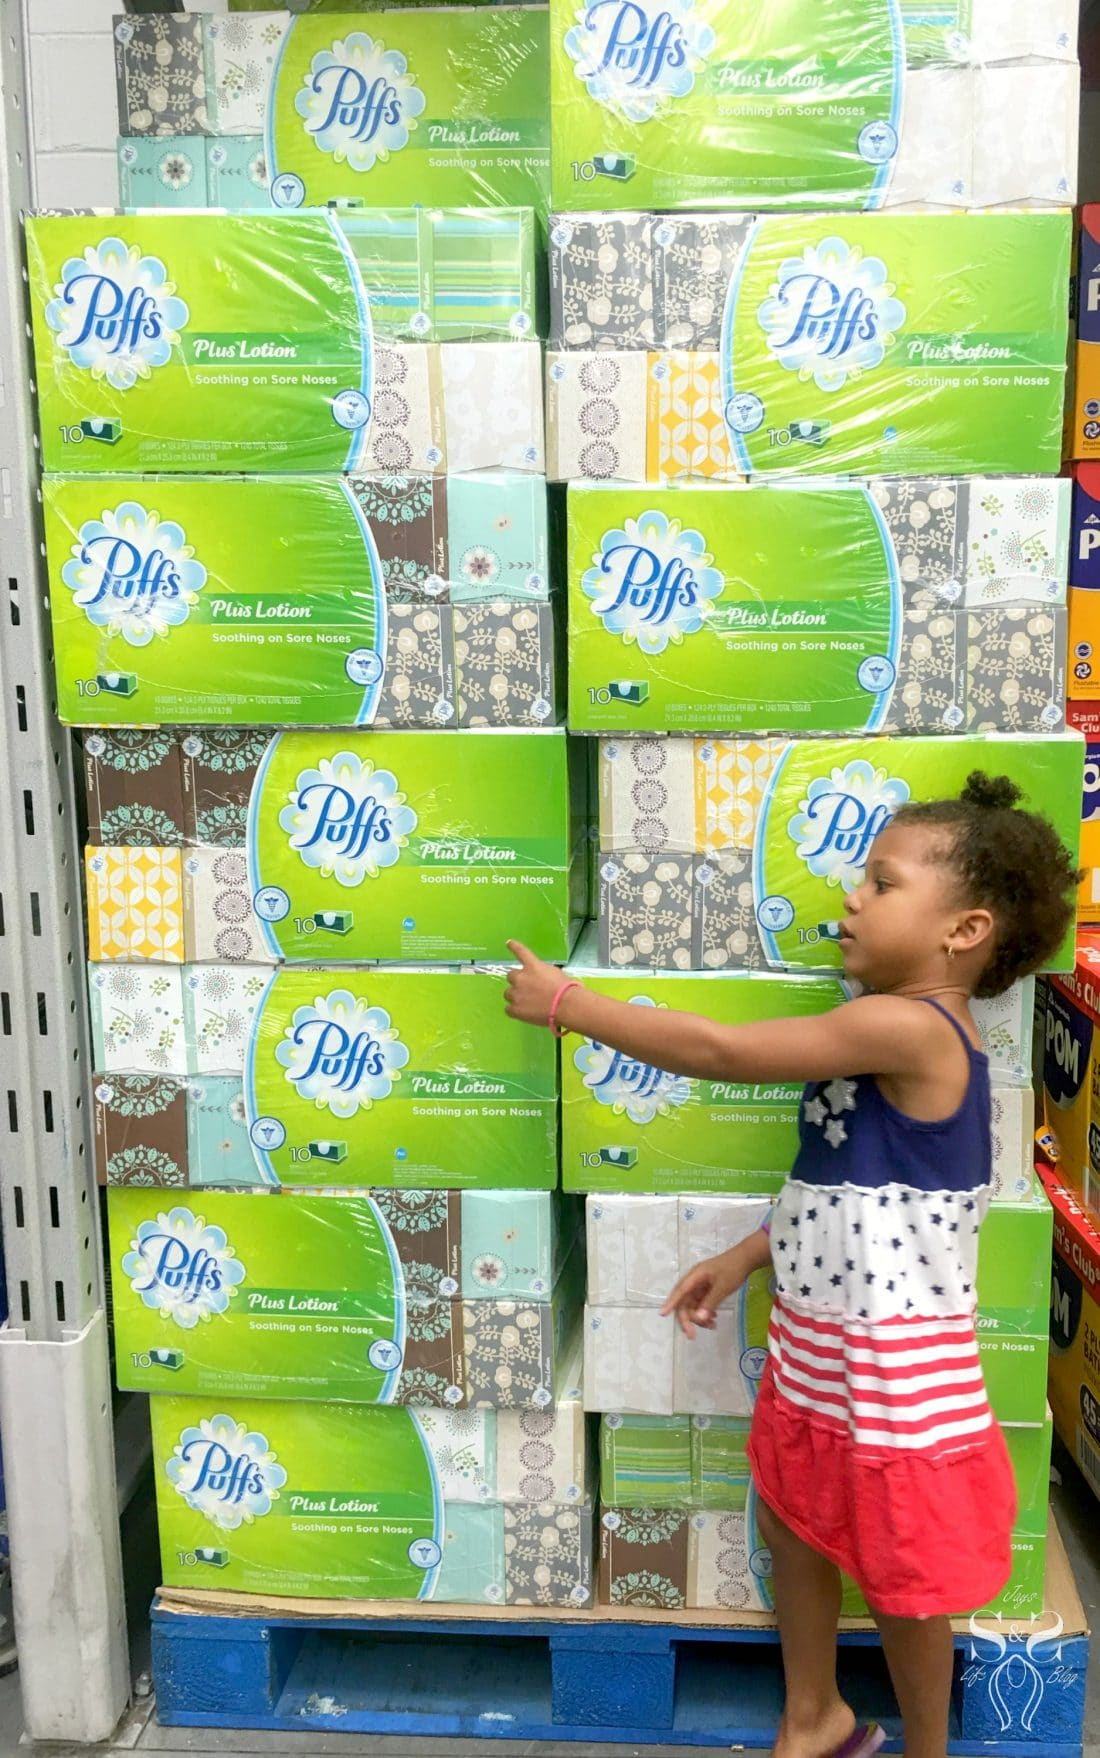 puffs-prevent-school-colds-tips-6